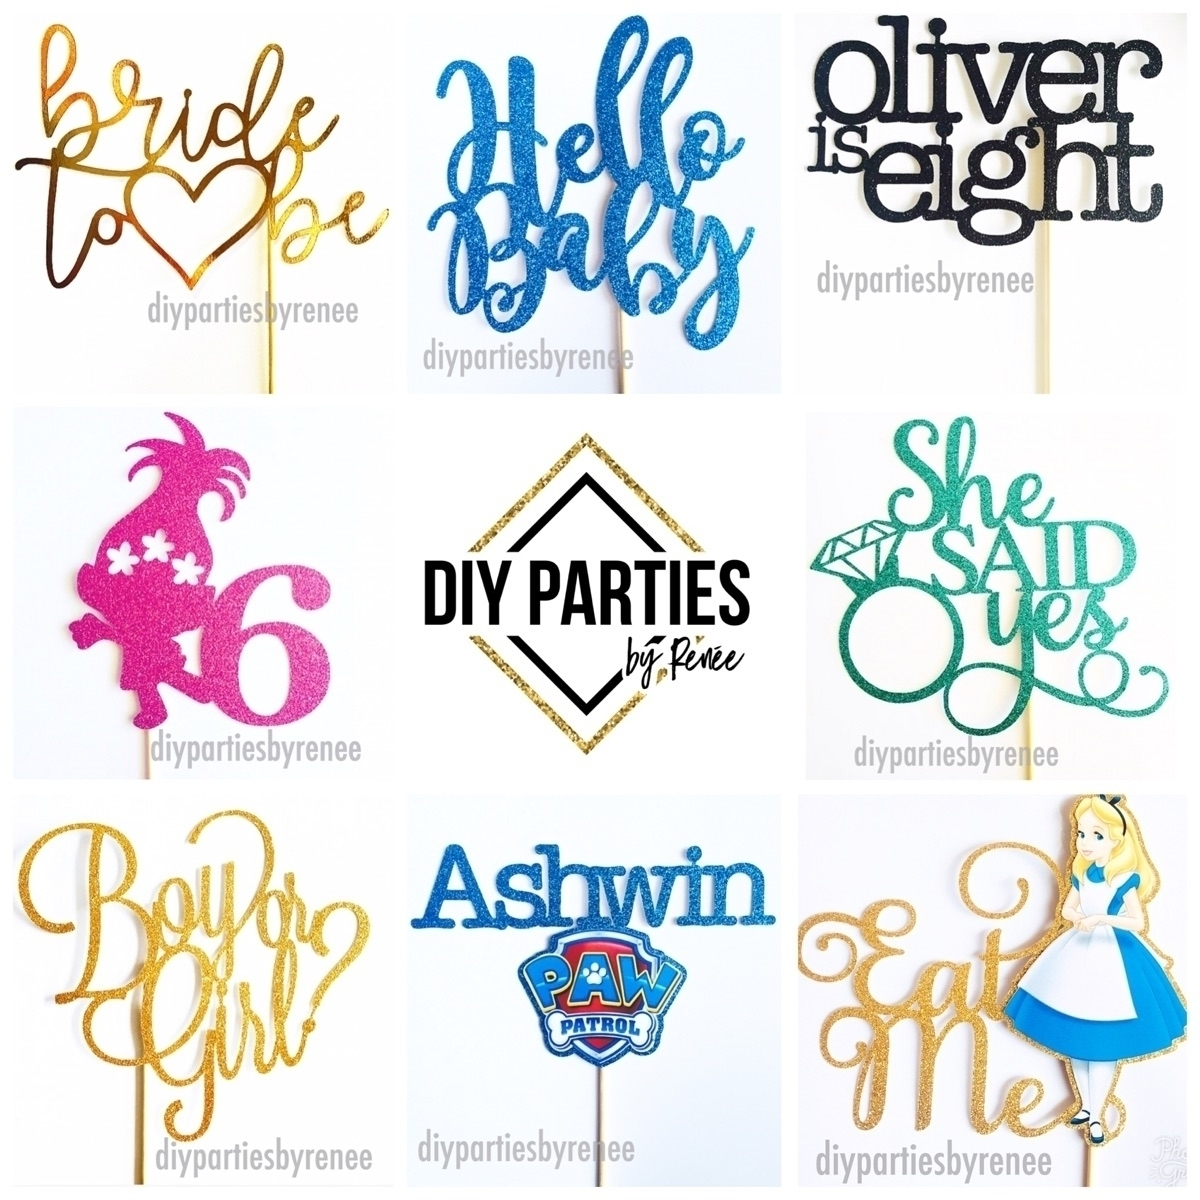 DIY Parties By Renee (@diyparties) Cover Image